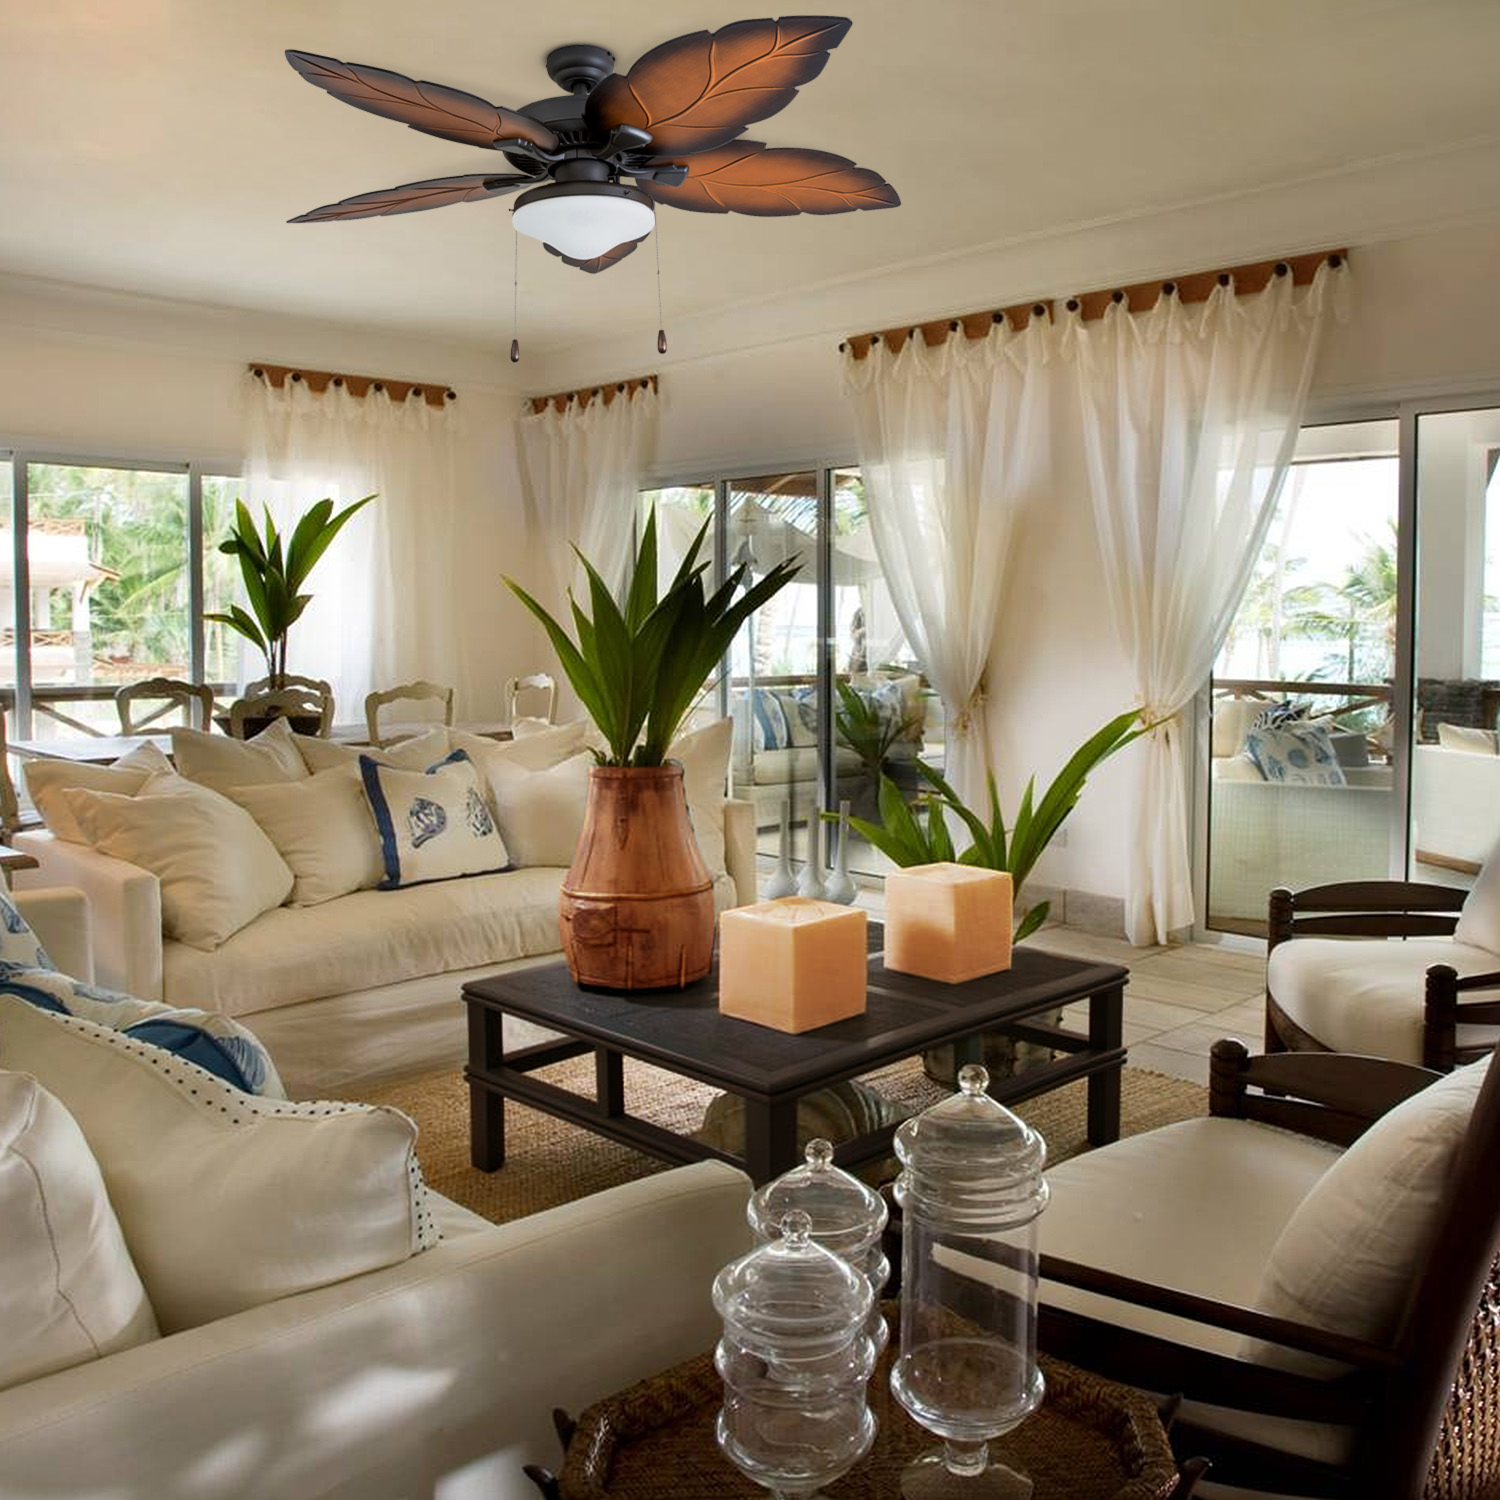 Prominence Home 50828 35 Delray Tropical 52 Inch Bronze Damp Rated Ceiling Fan Globe Mocha Blades And Bluetooth Capable Remote